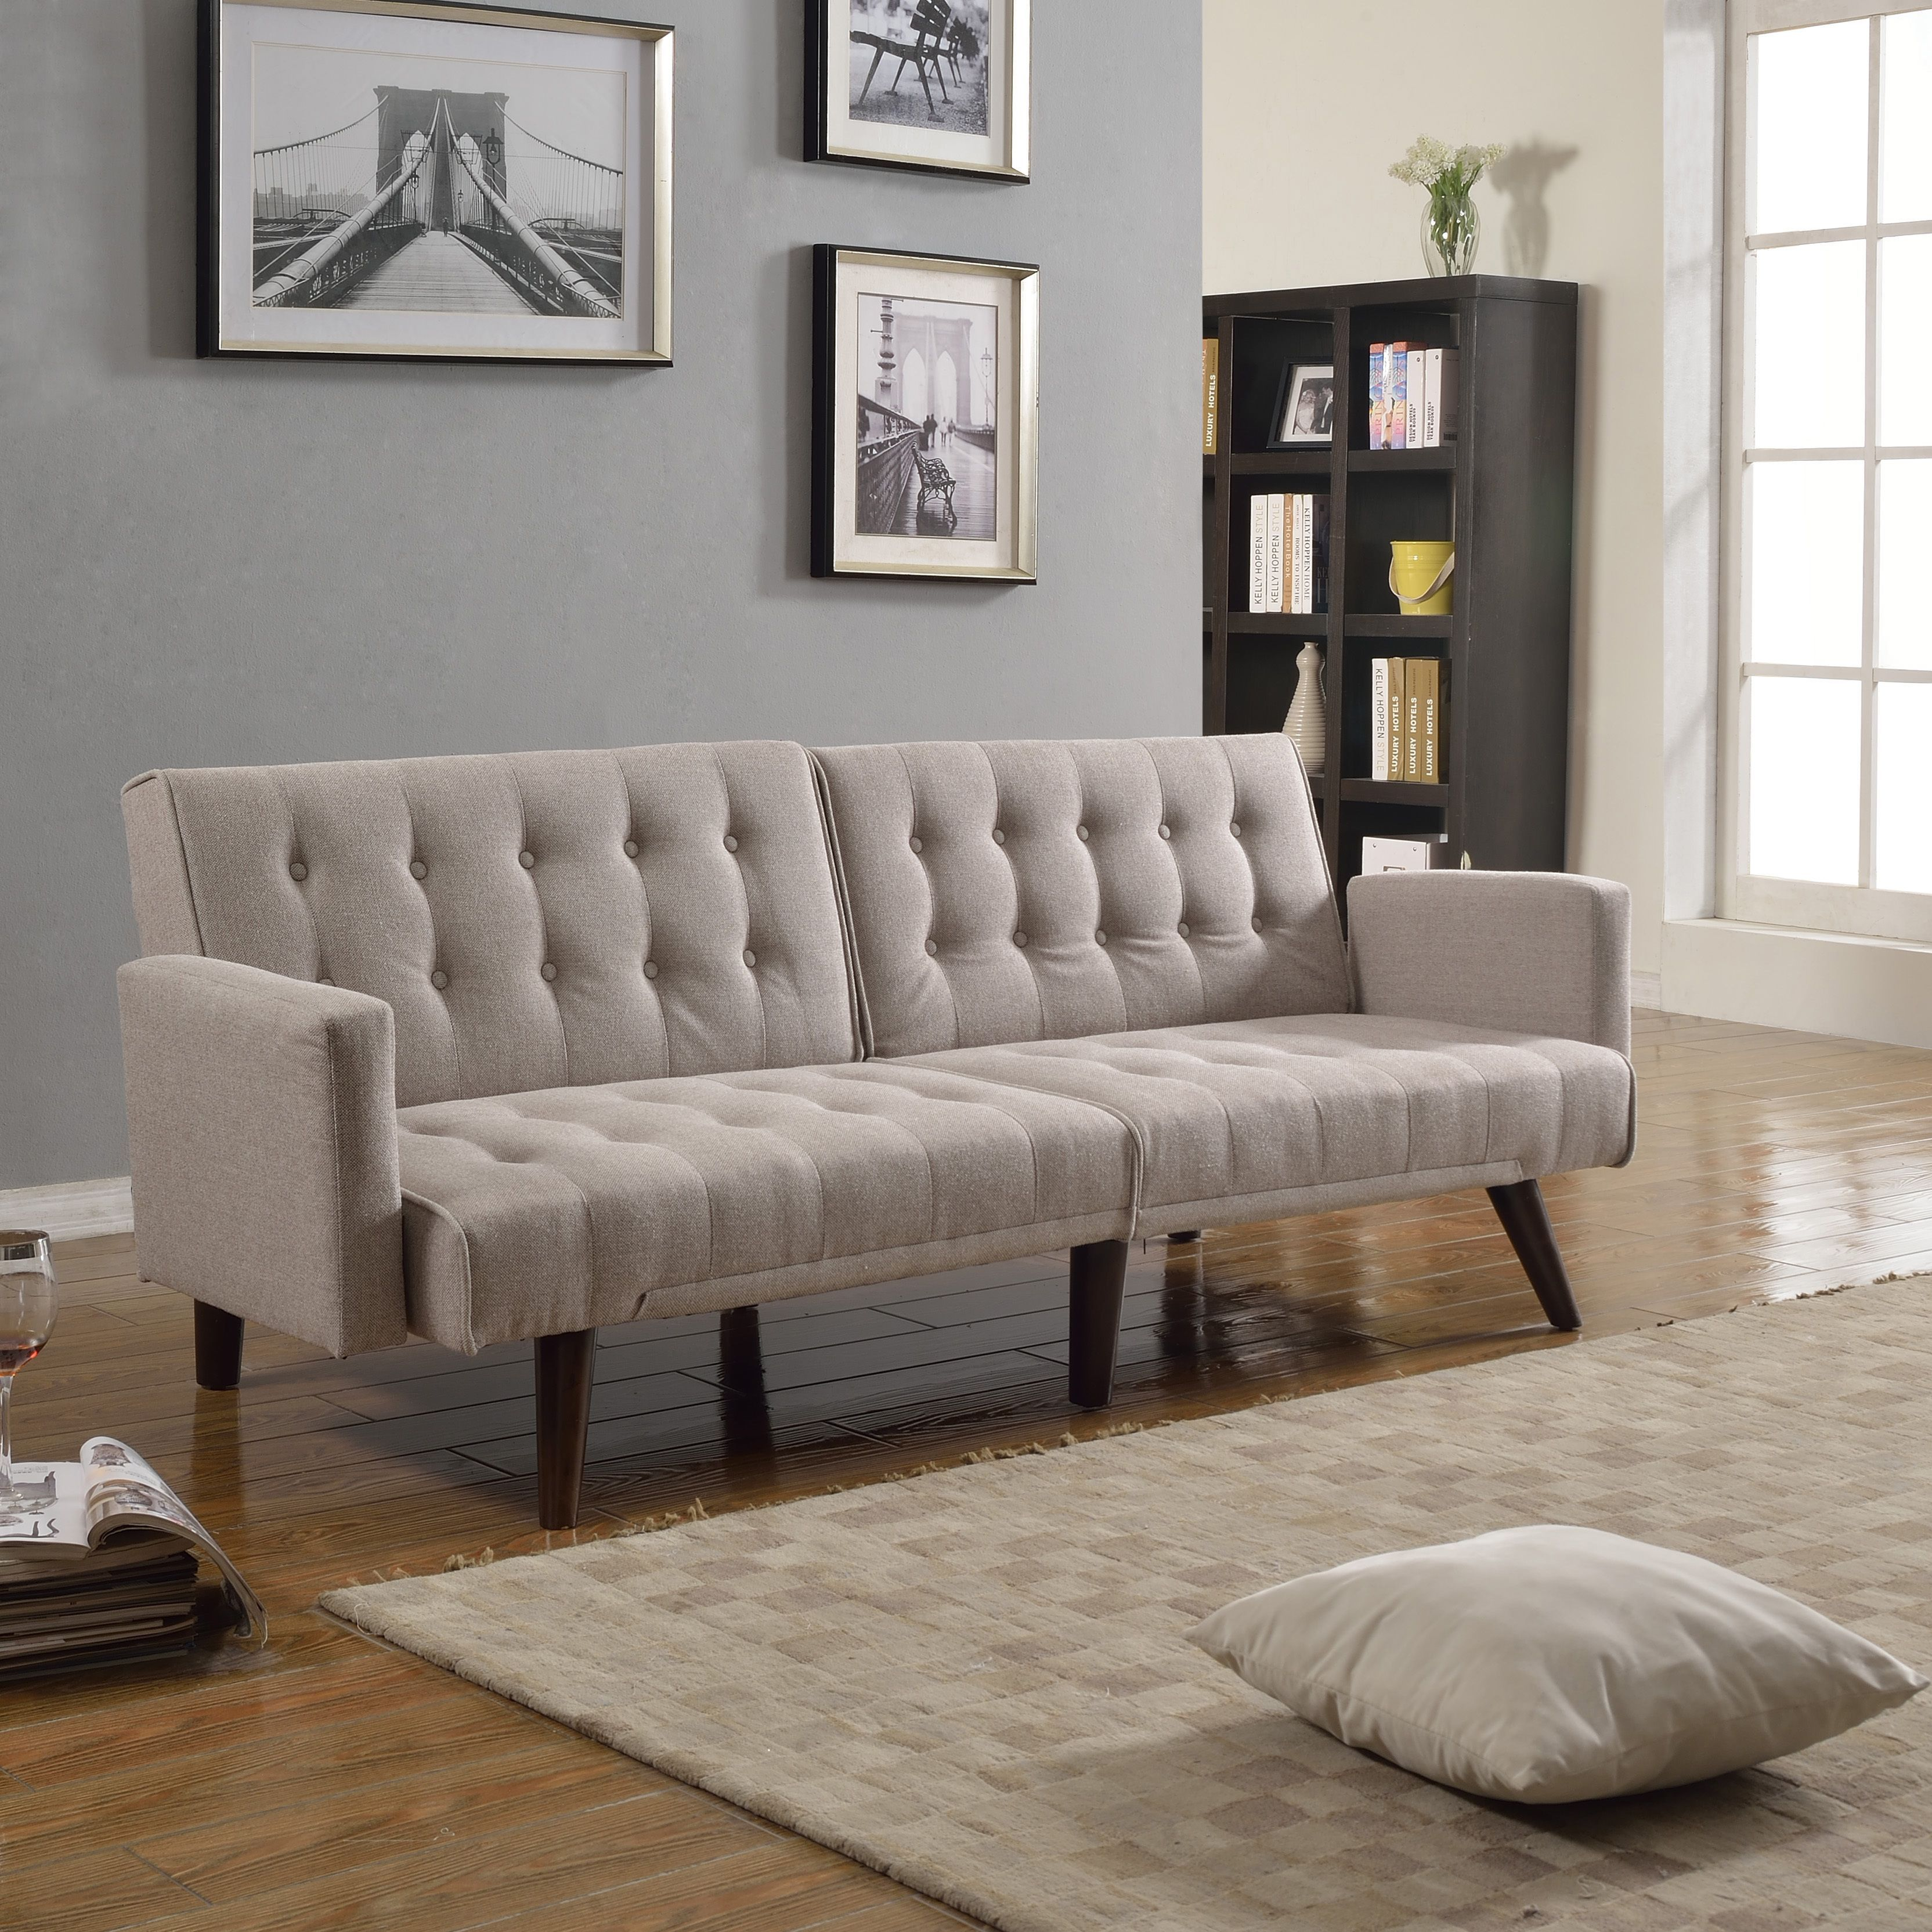 Small E Comfortable Sleeper Futon With Split Back For Individual Preference Features Dark Wood Detachable Legs And Arm Rests